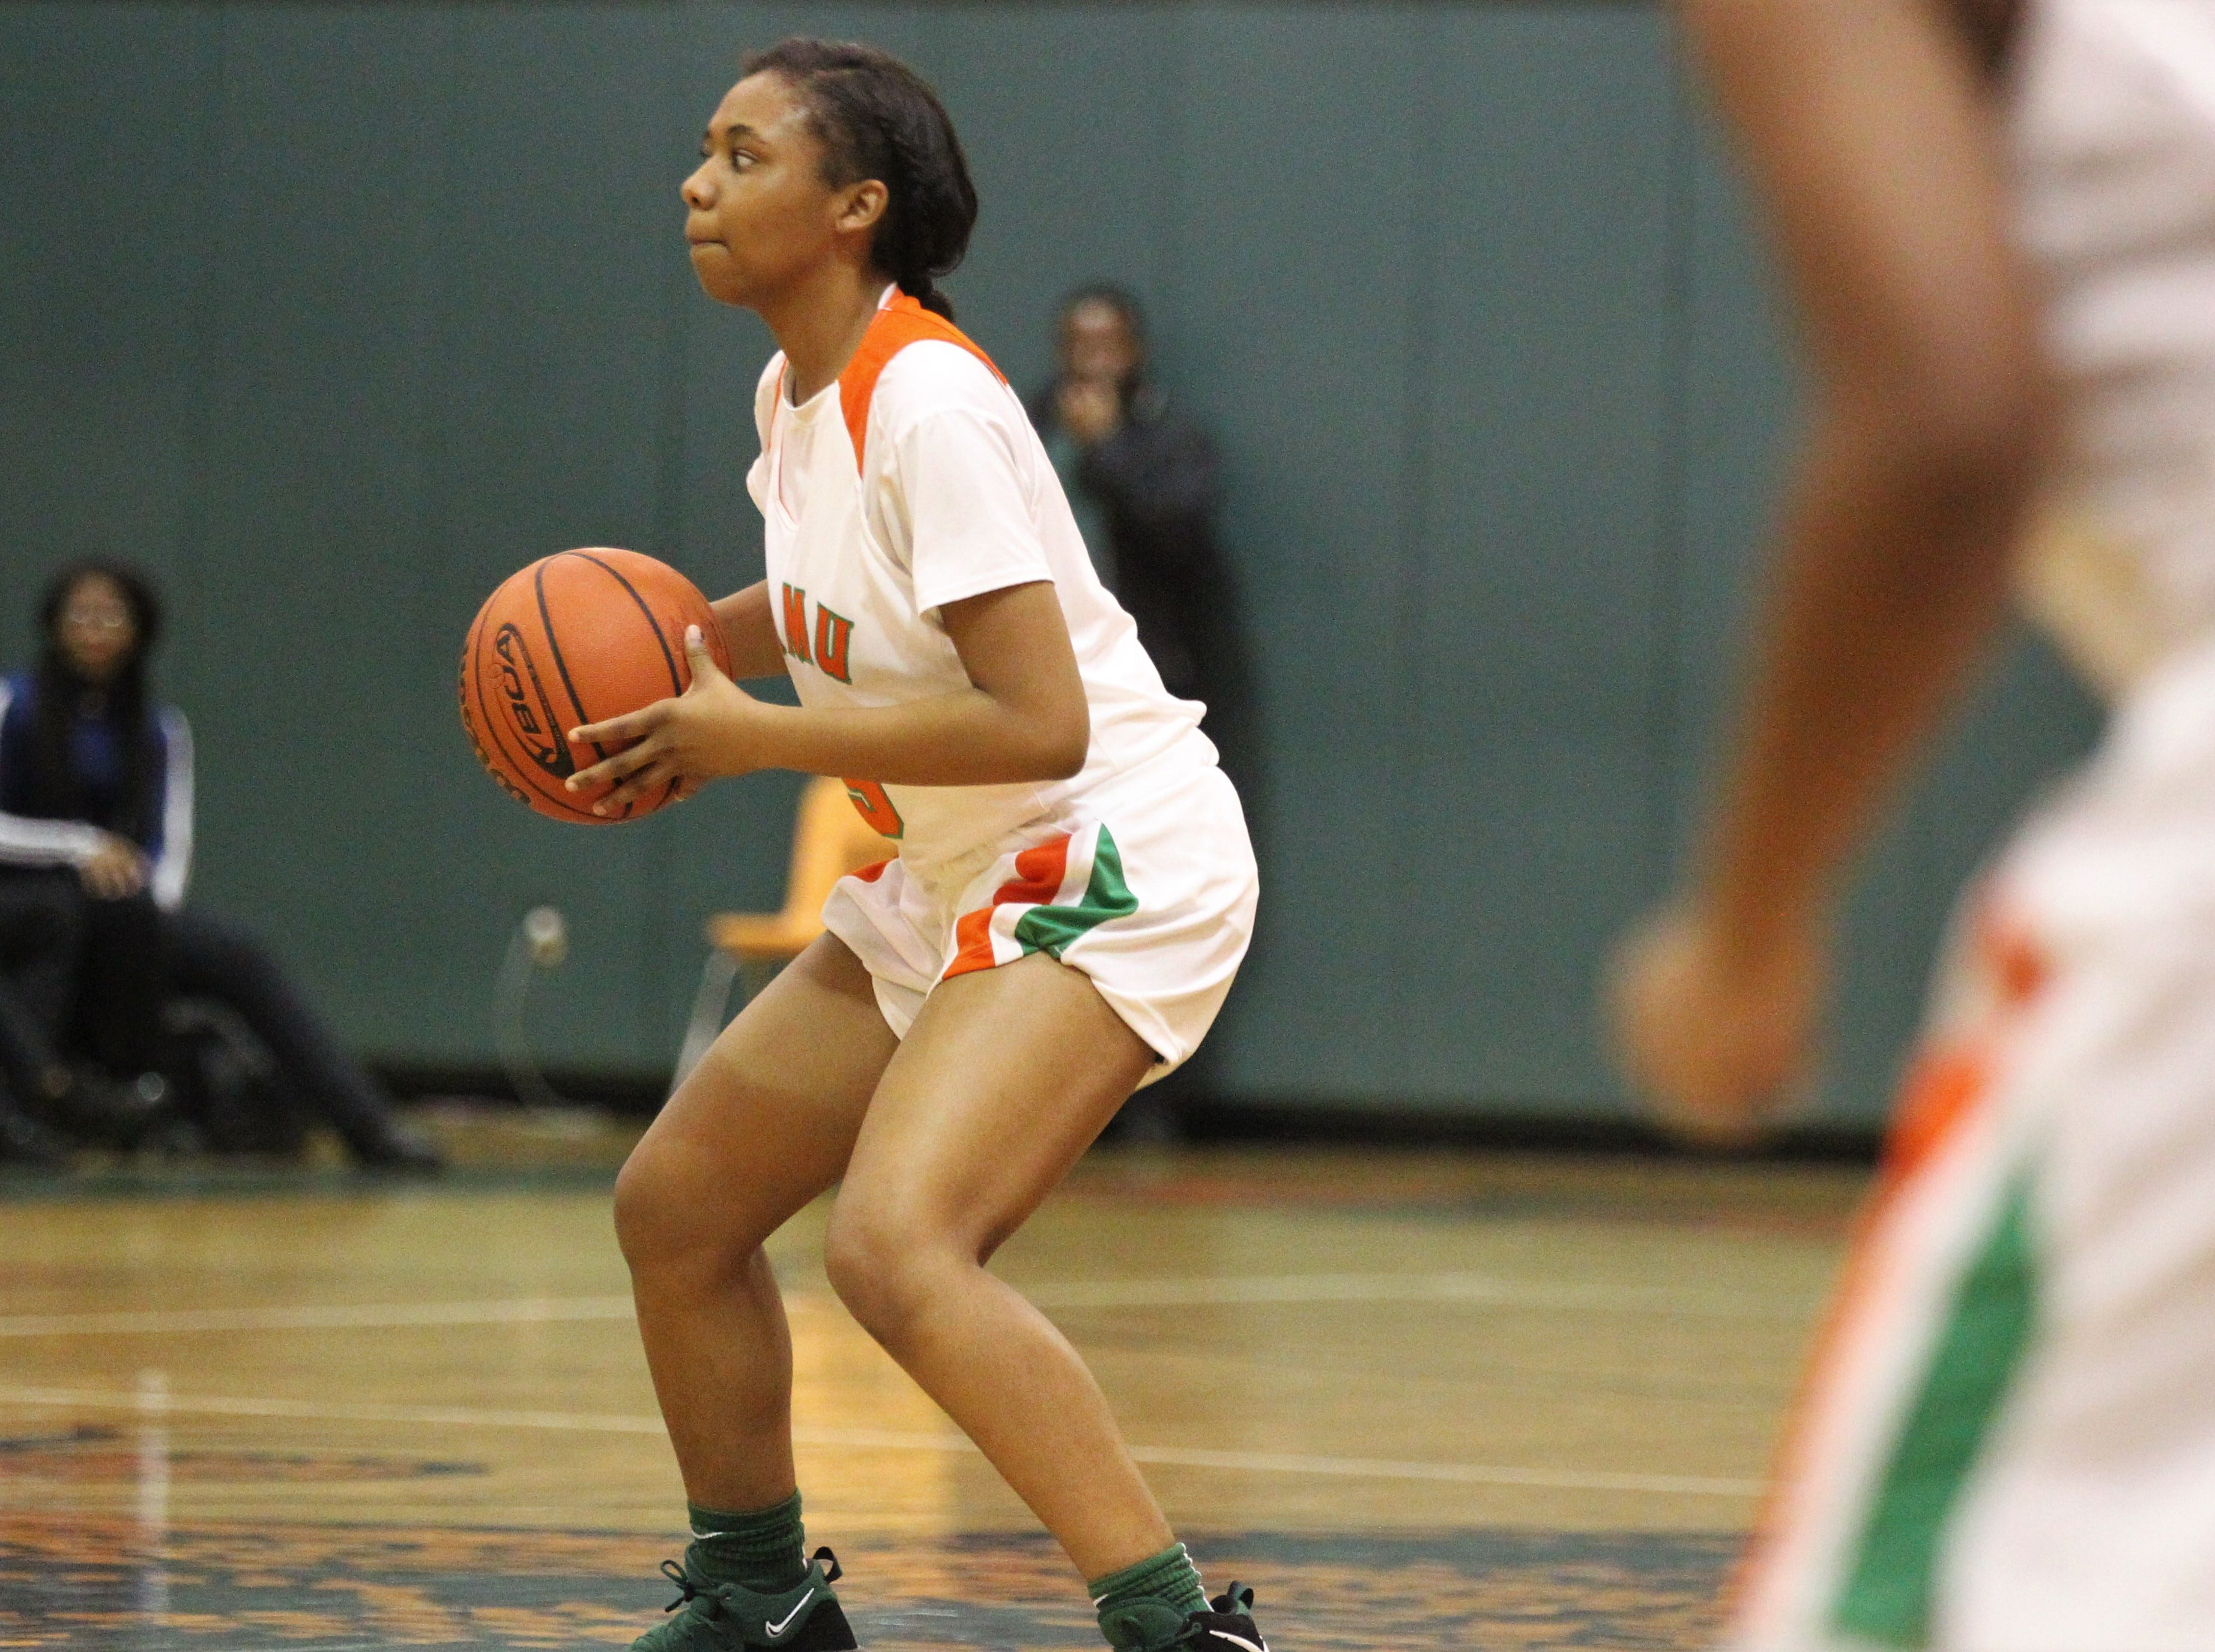 FAMU DRS junior Ashley Reddick looks for a pass as FAMU DRS' girls basketball team beat NFC 59-41 for a District 1-3A title on Jan. 7, 2019.